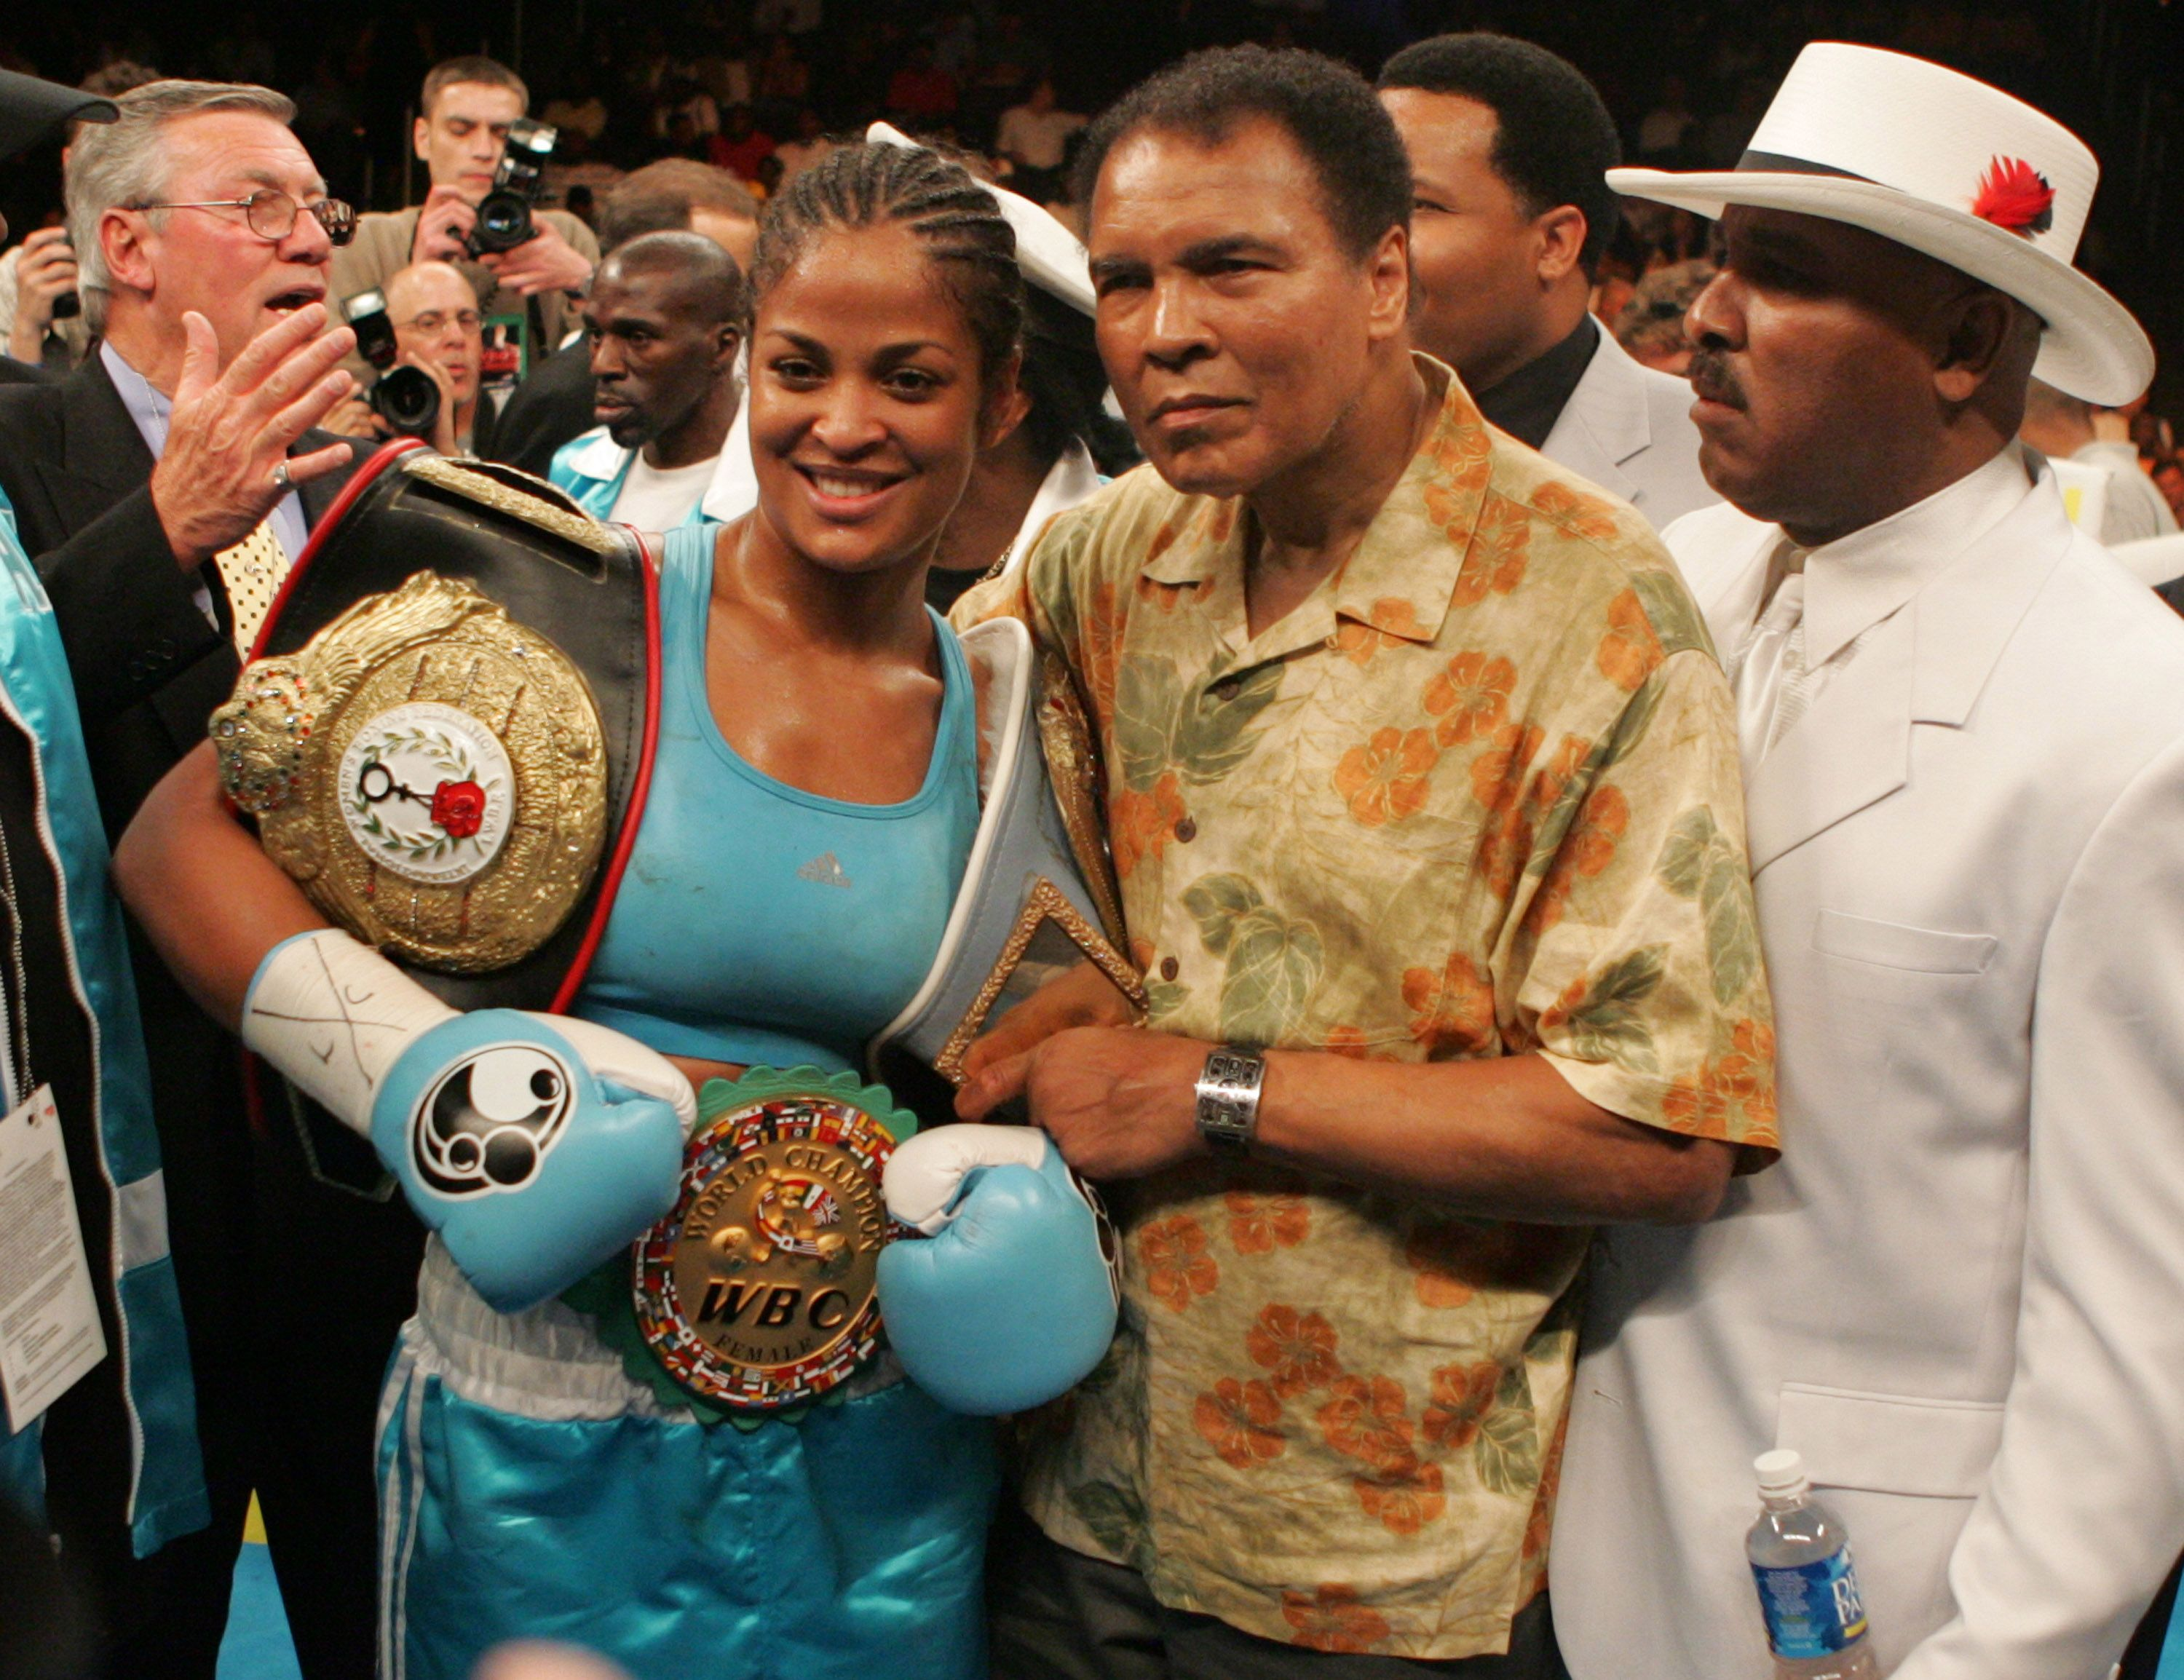 Laila Ali with her father Muhammad Ali after a boxing match   Source: Getty Images/GlobalImagesUkraine